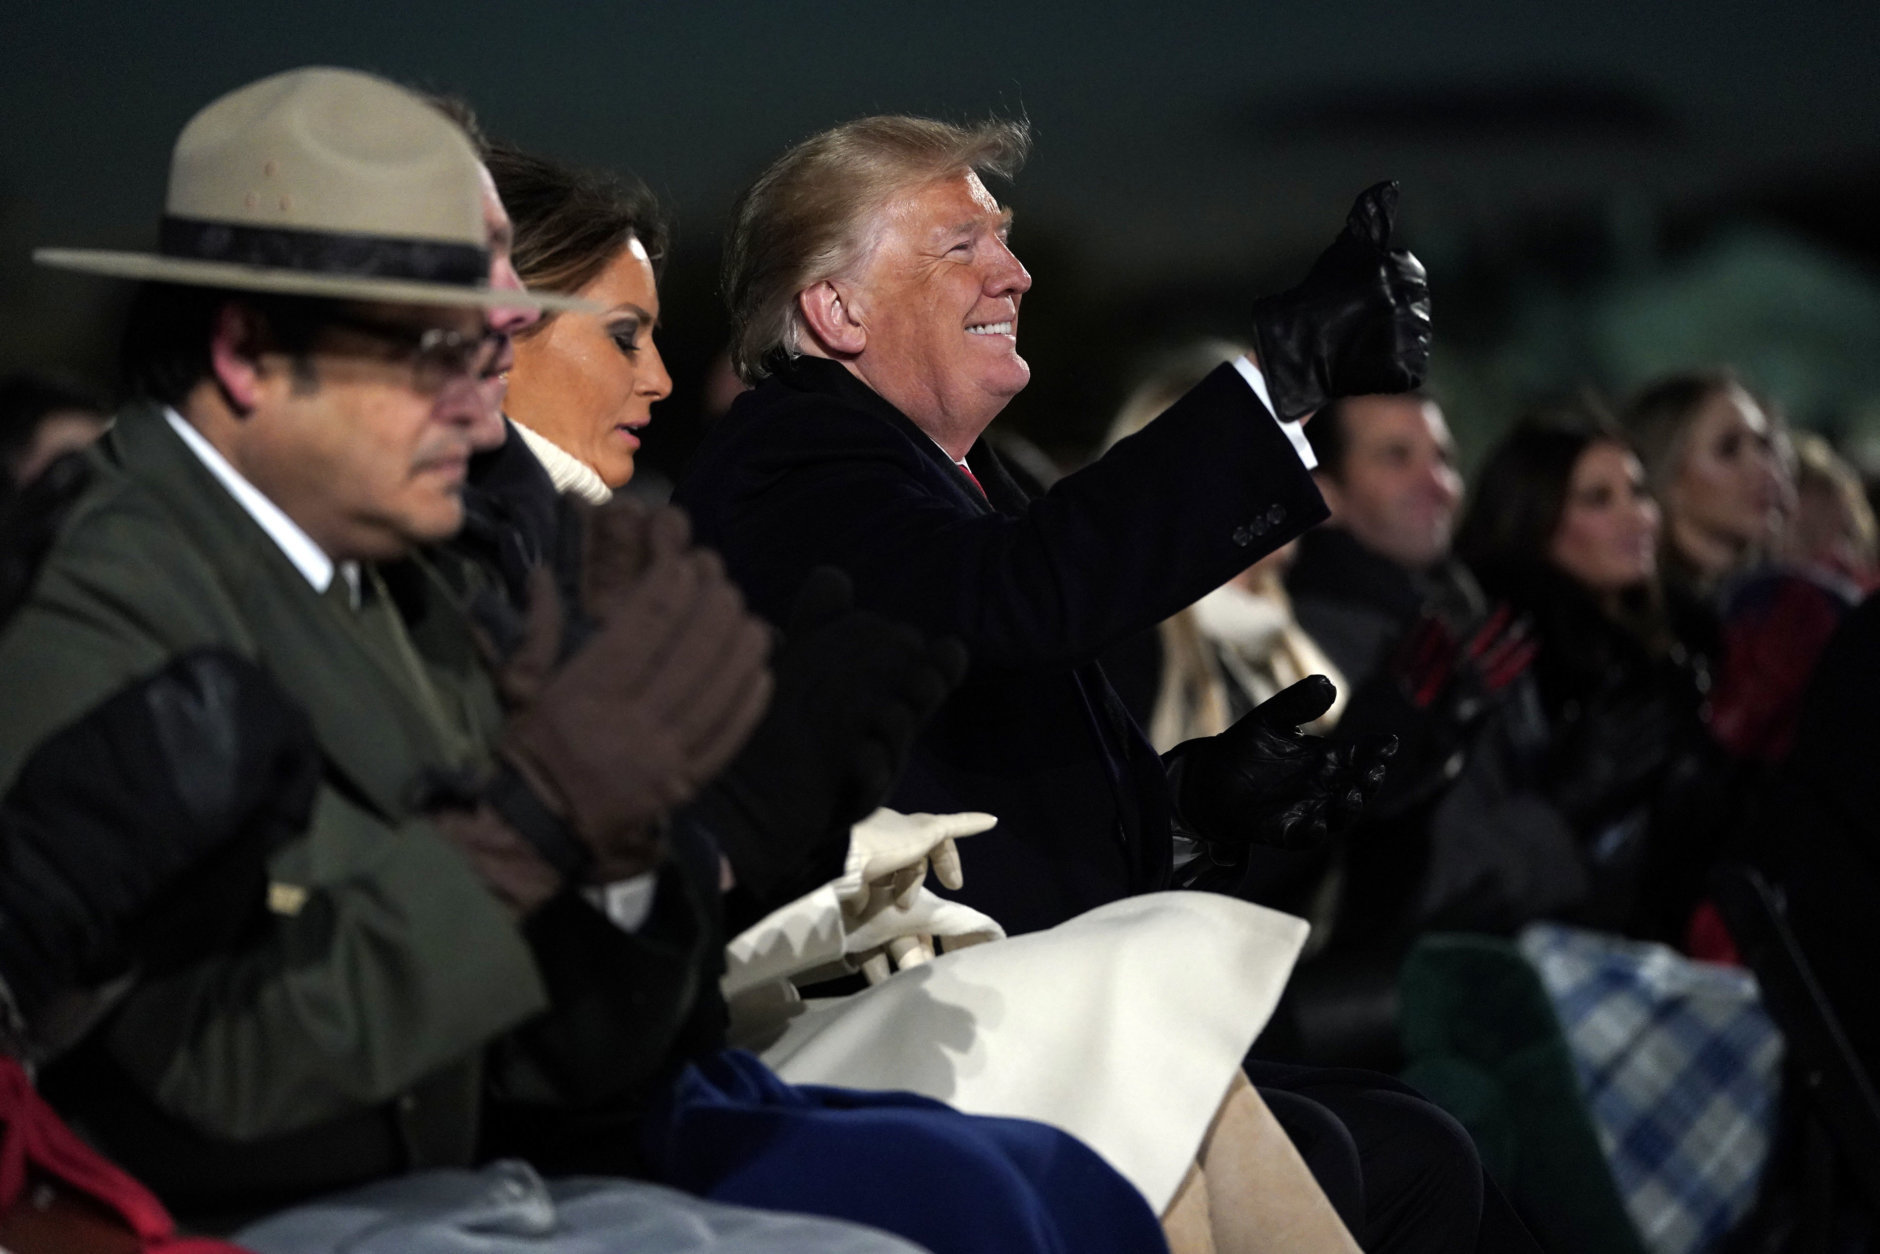 President Donald Trump and first lady Melania Trump attend the National Christmas Tree lighting ceremony on the Ellipse near the White House in Washington, Wednesday, Nov. 28, 2018. (AP Photo/Andrew Harnik)